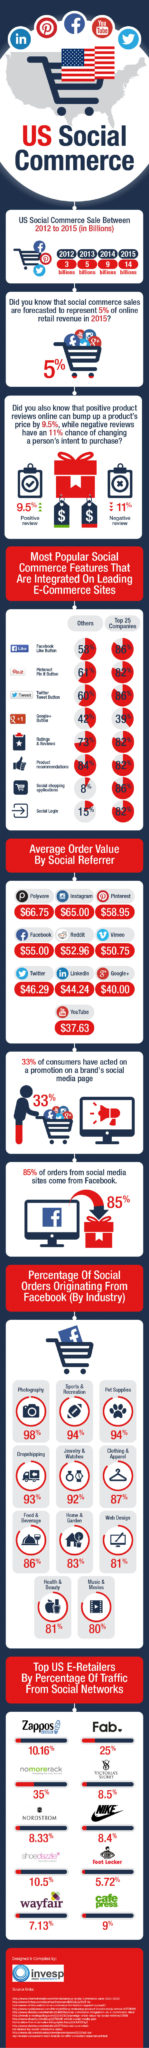 us-social-commerce-infographic